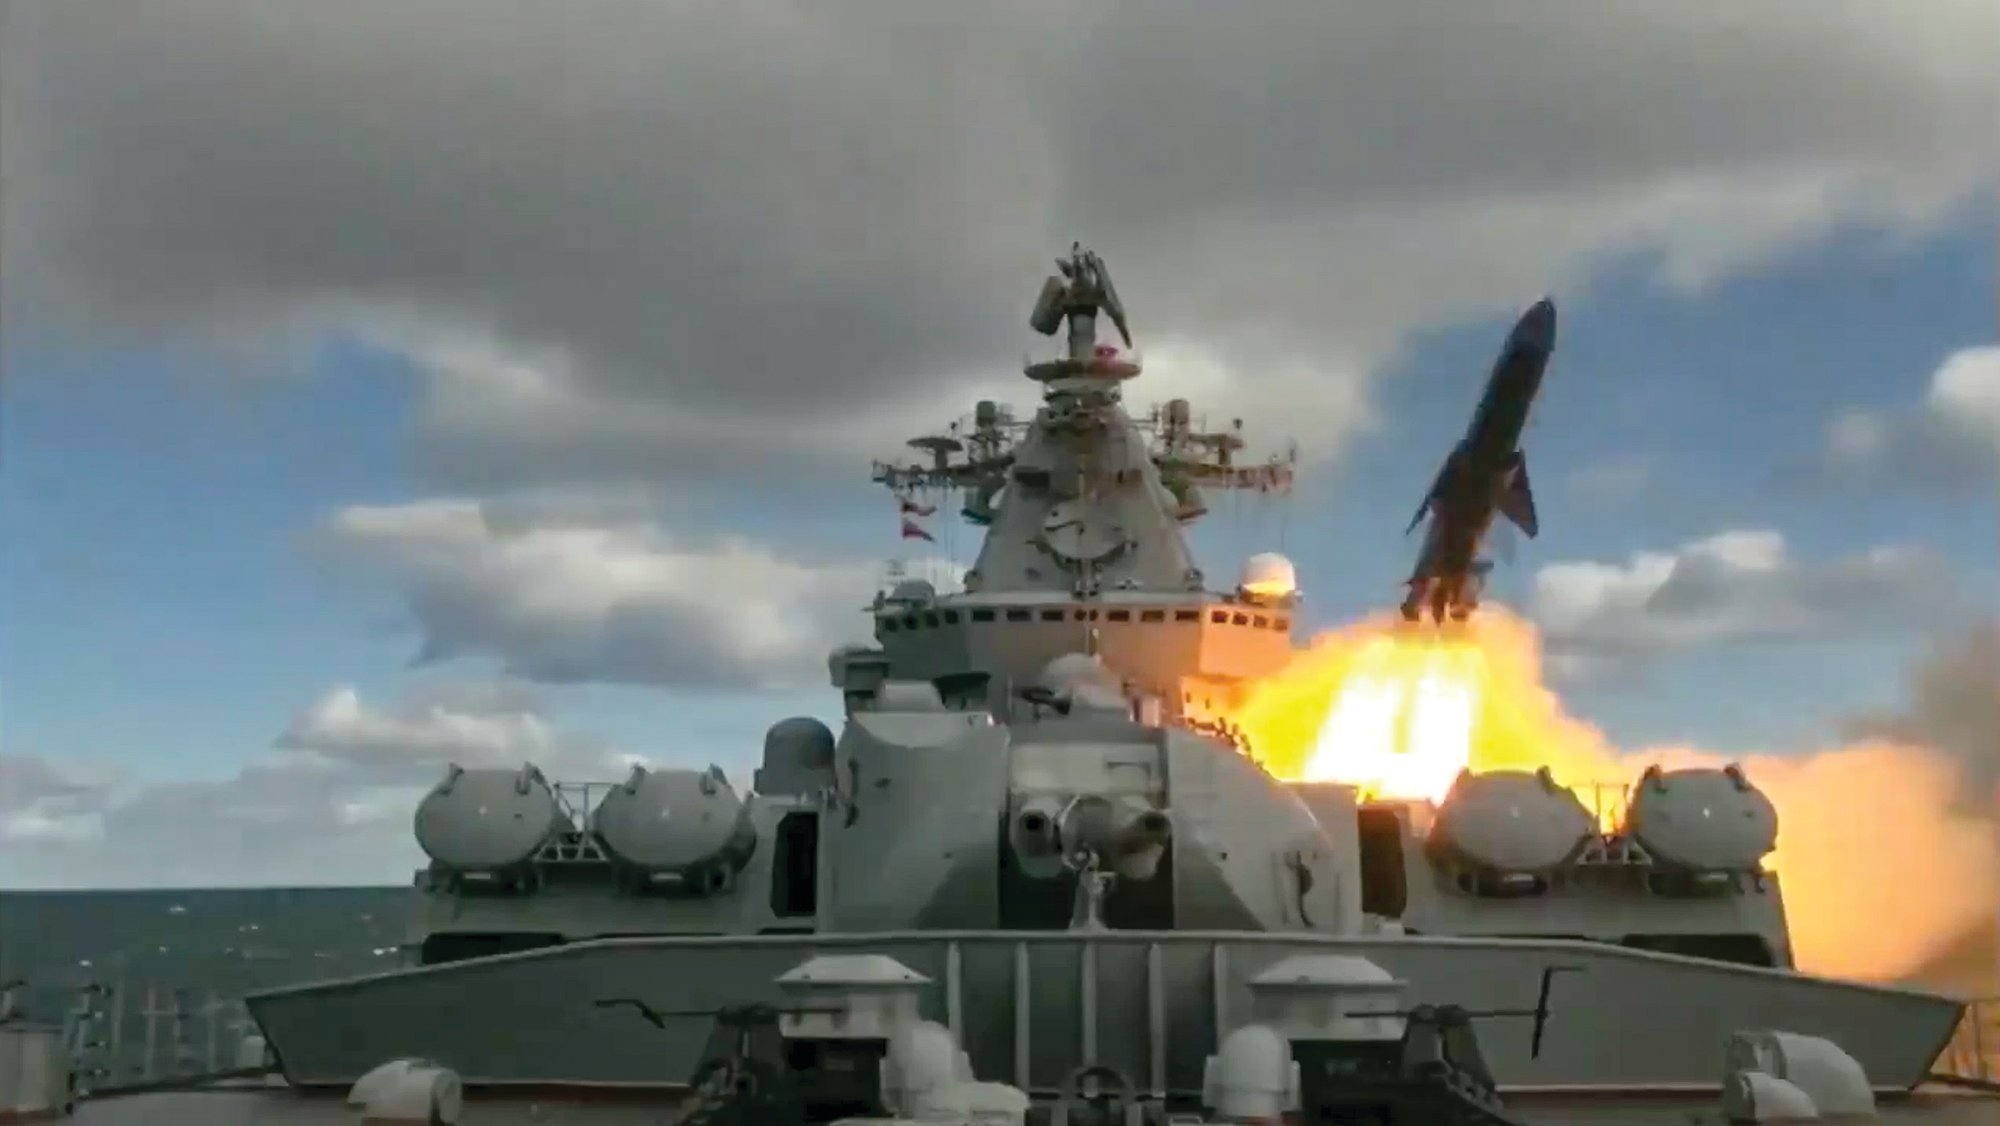 Russian Defense Ministry Press Service via AP   In this undated video grab provided by Russian Defense Ministry Press Service, Russia's Varyag missile cruiser fires a cruise missile as part of the Russian navy maneuvers in the Bering Sea. The Russian navy has conducted massive war games near Alaska involving dozens of ships and aircraft, the biggest such drills in the area since Soviet times.